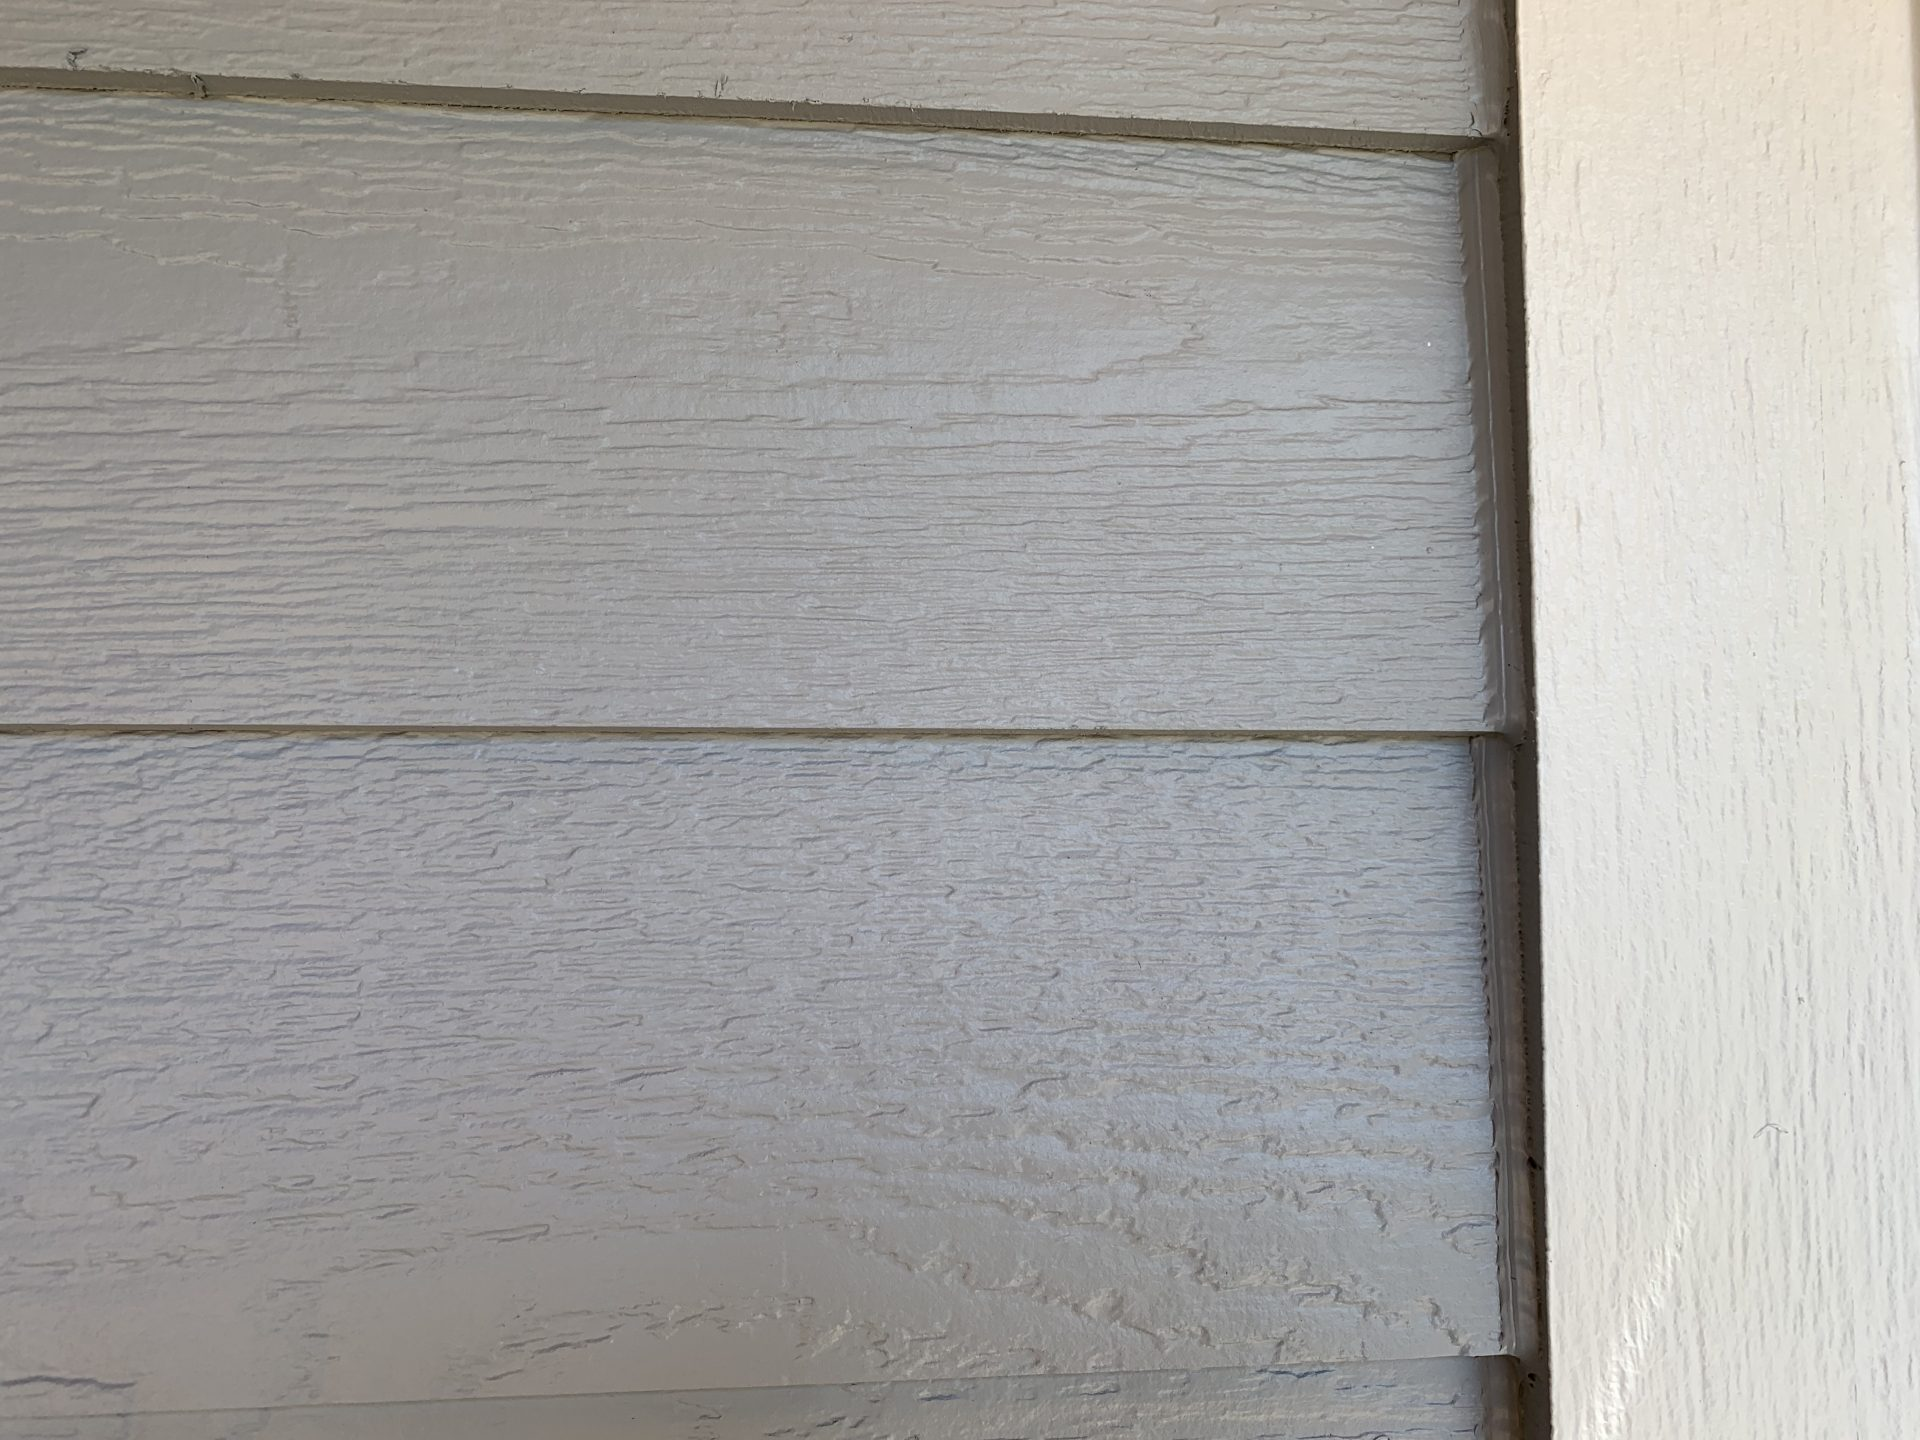 James Hardie Plank Fiber Cement Siding With Hardie Trim